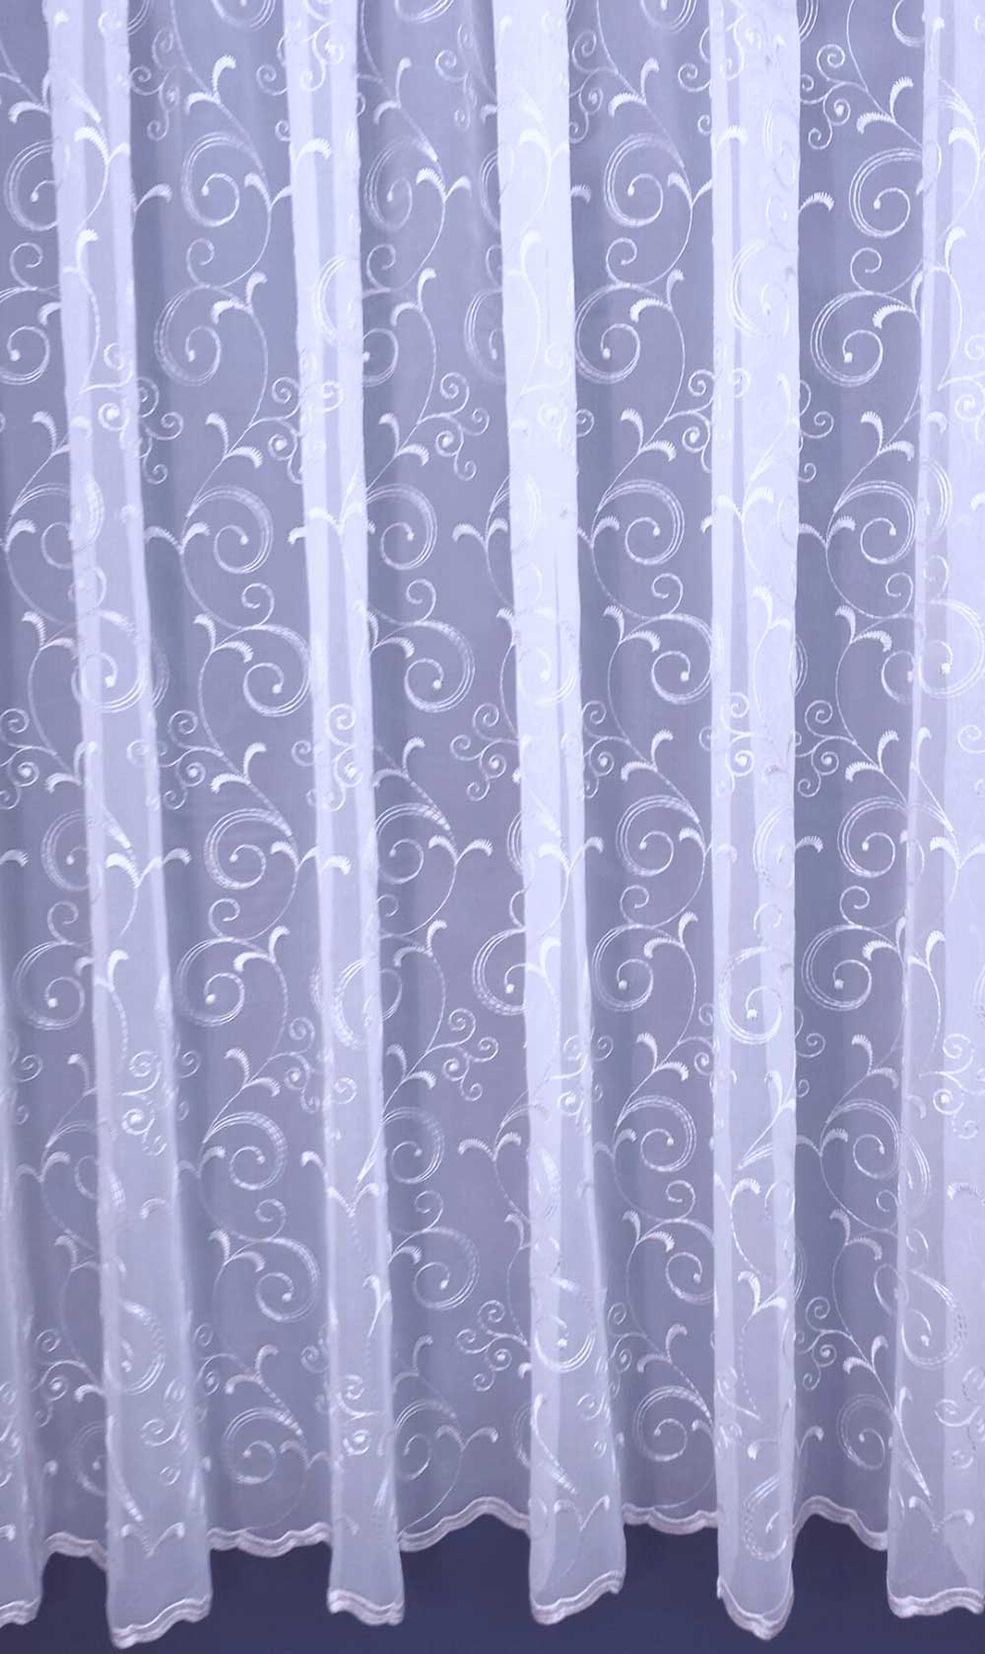 Slot top voile pair olive cheap green curtain voile uk delivery - Avi S Net Curtains Is The Best Place On The Net For Net Curtains Lace Voiles Jardinieres Caf Nets And Side Curtains